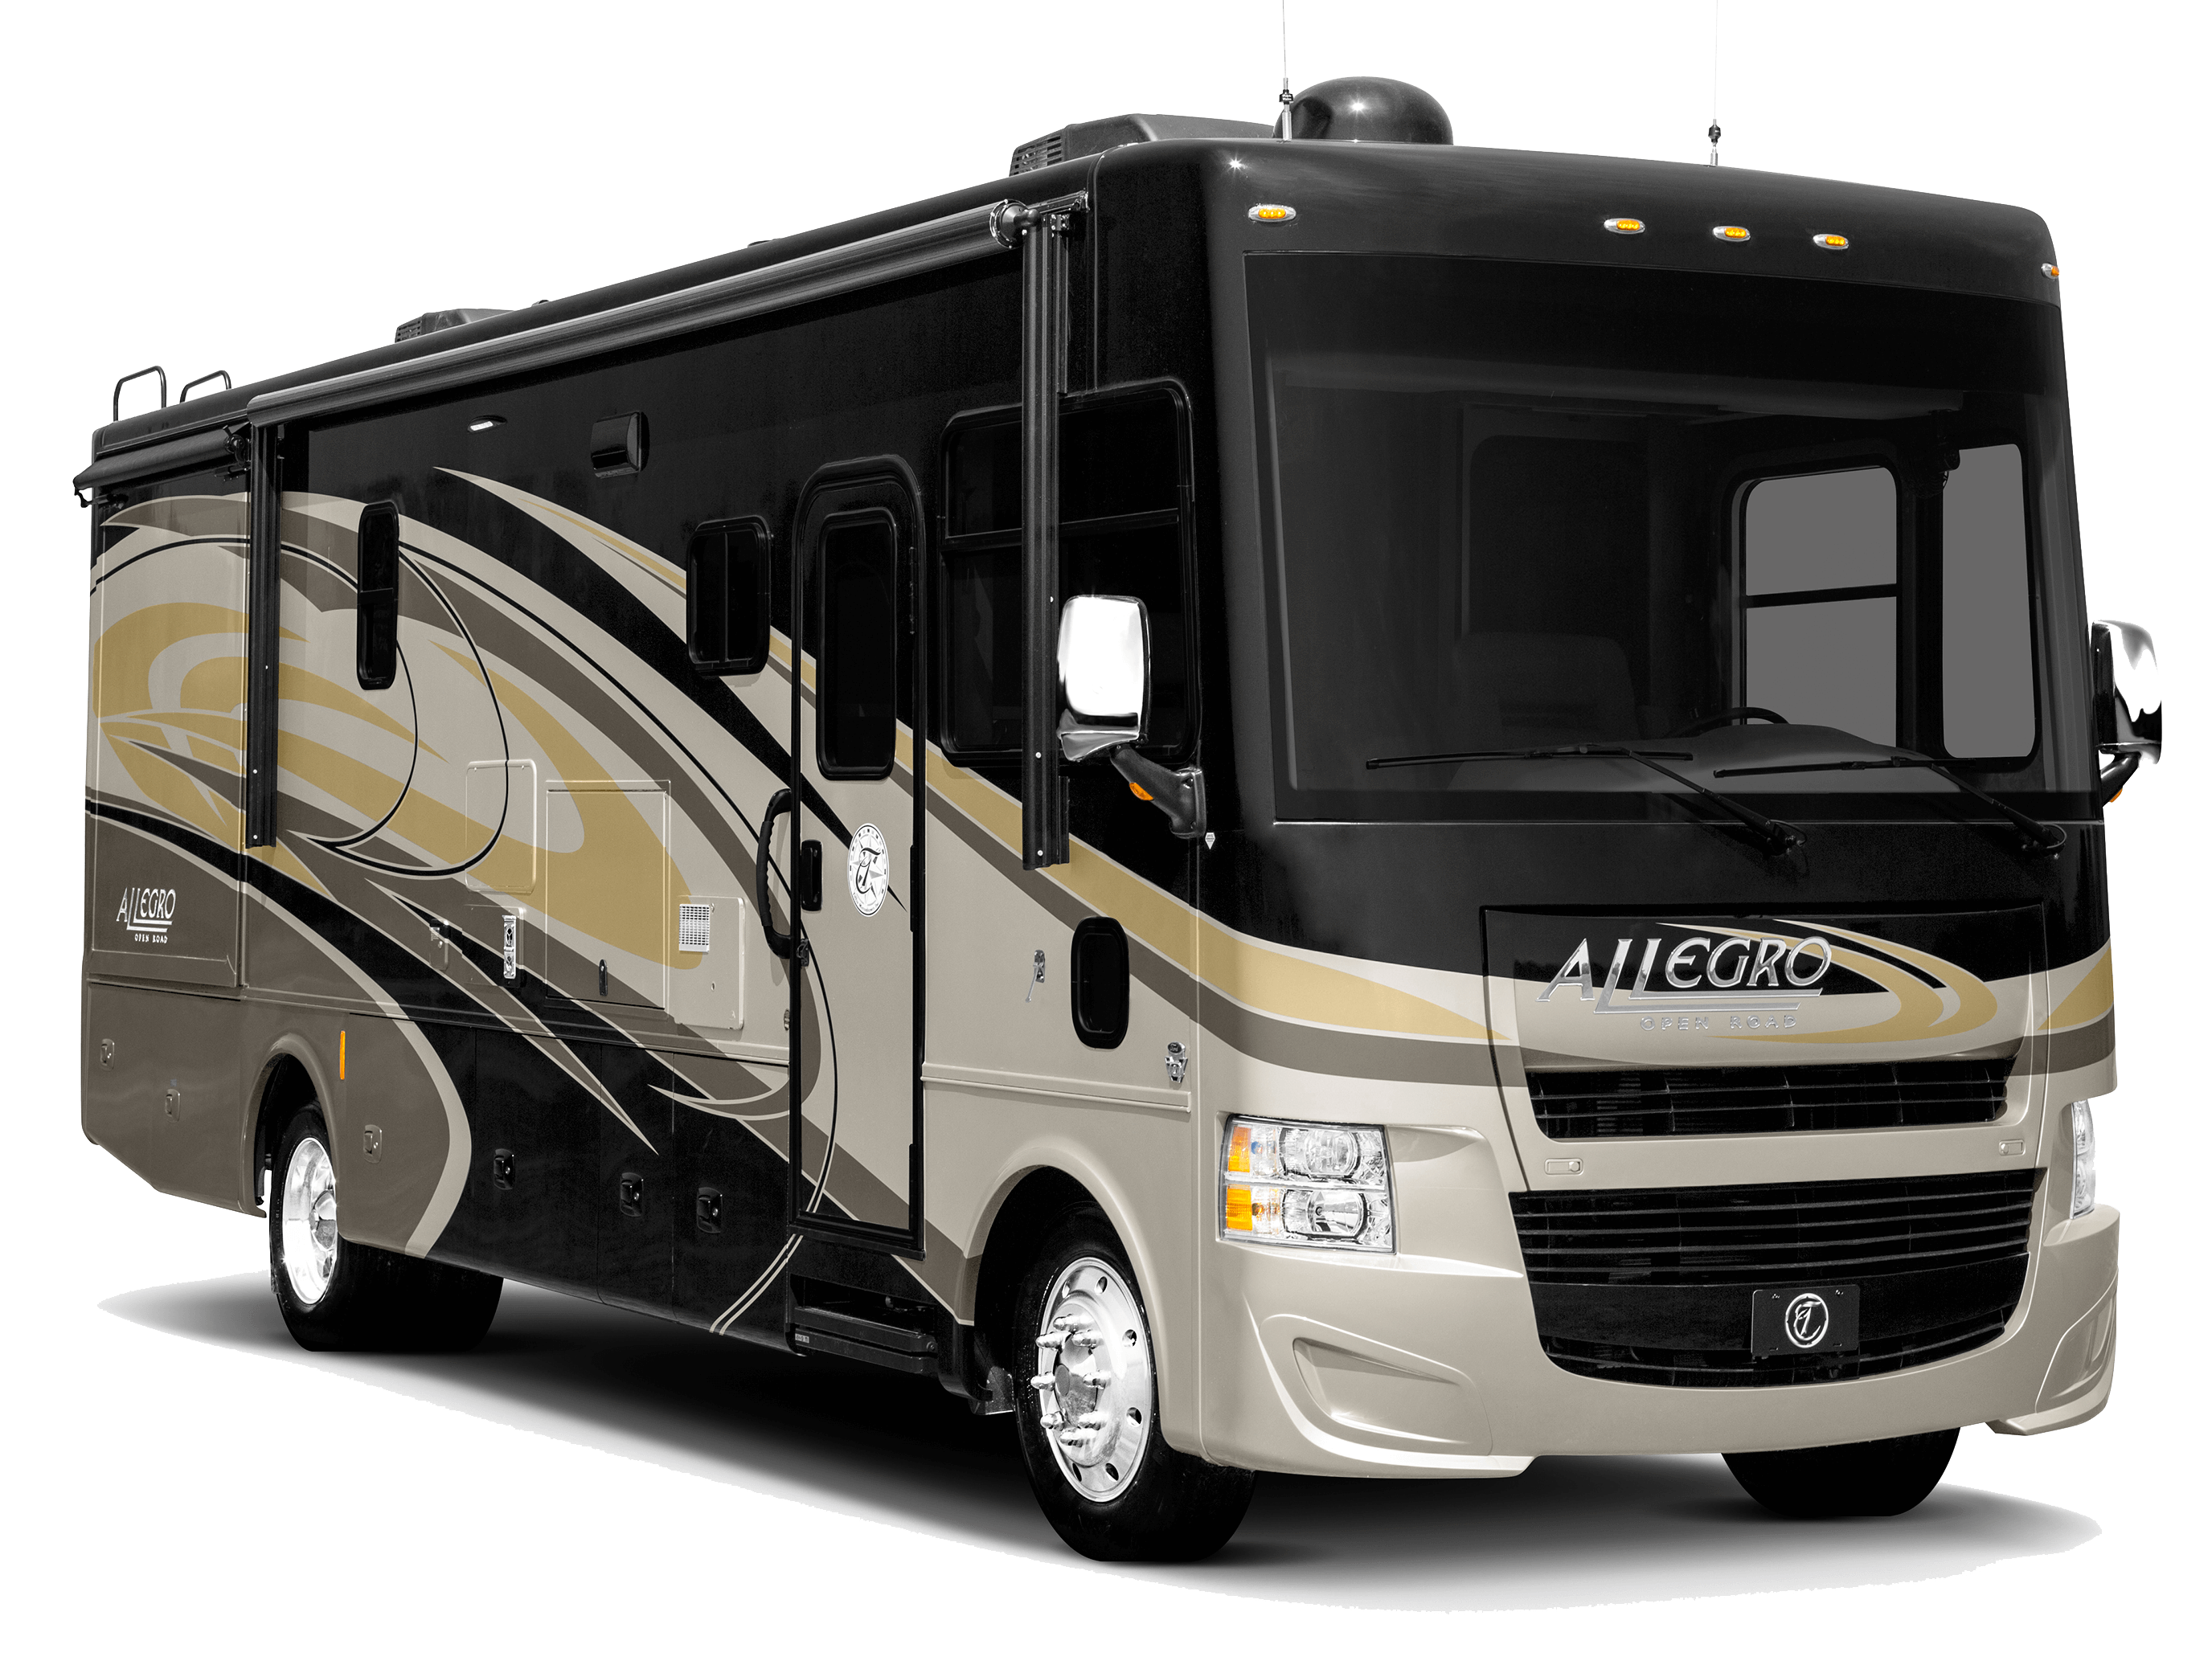 Allegro Motor Home Class A on tiffin allegro motorhomes floor plans